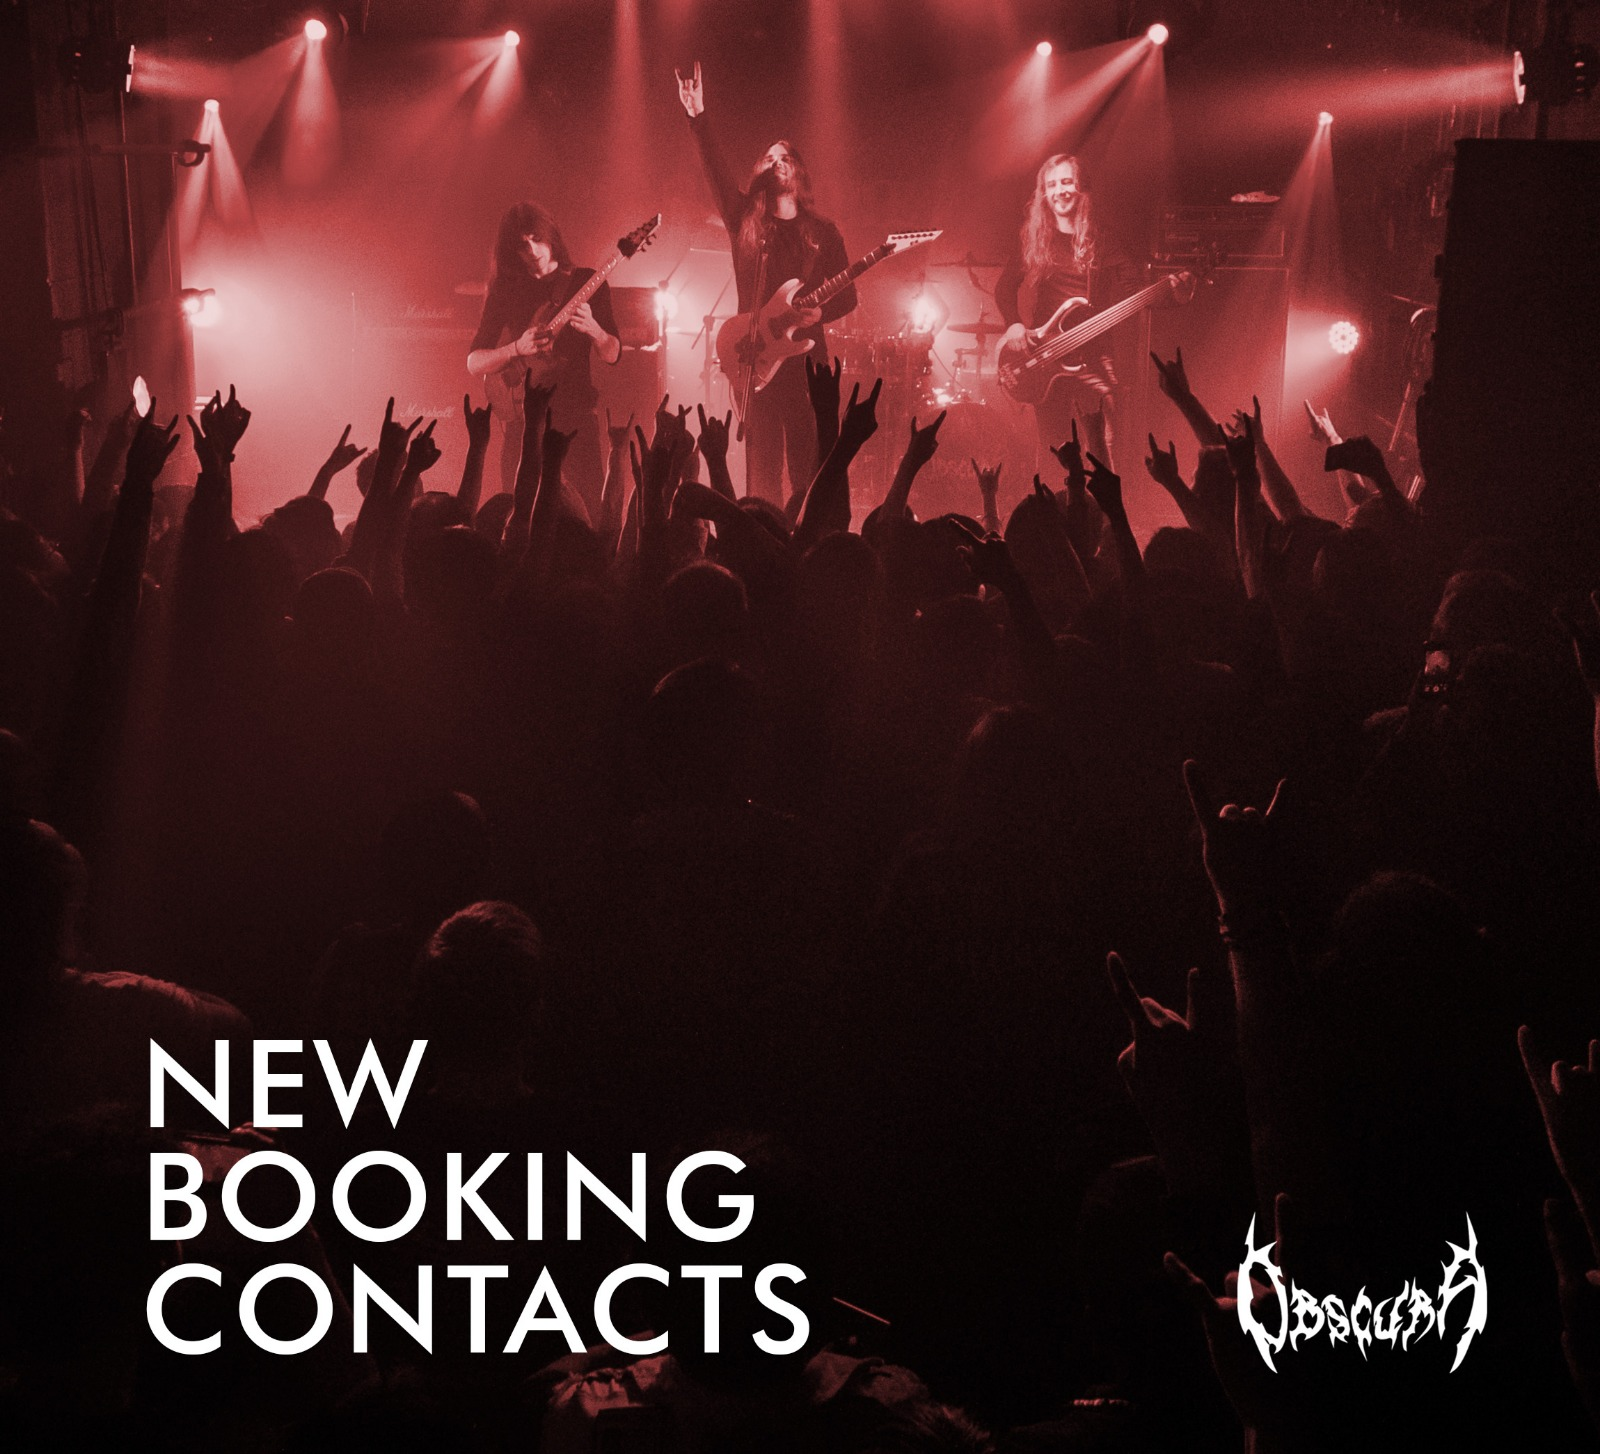 OBSCURA | new booking contacts